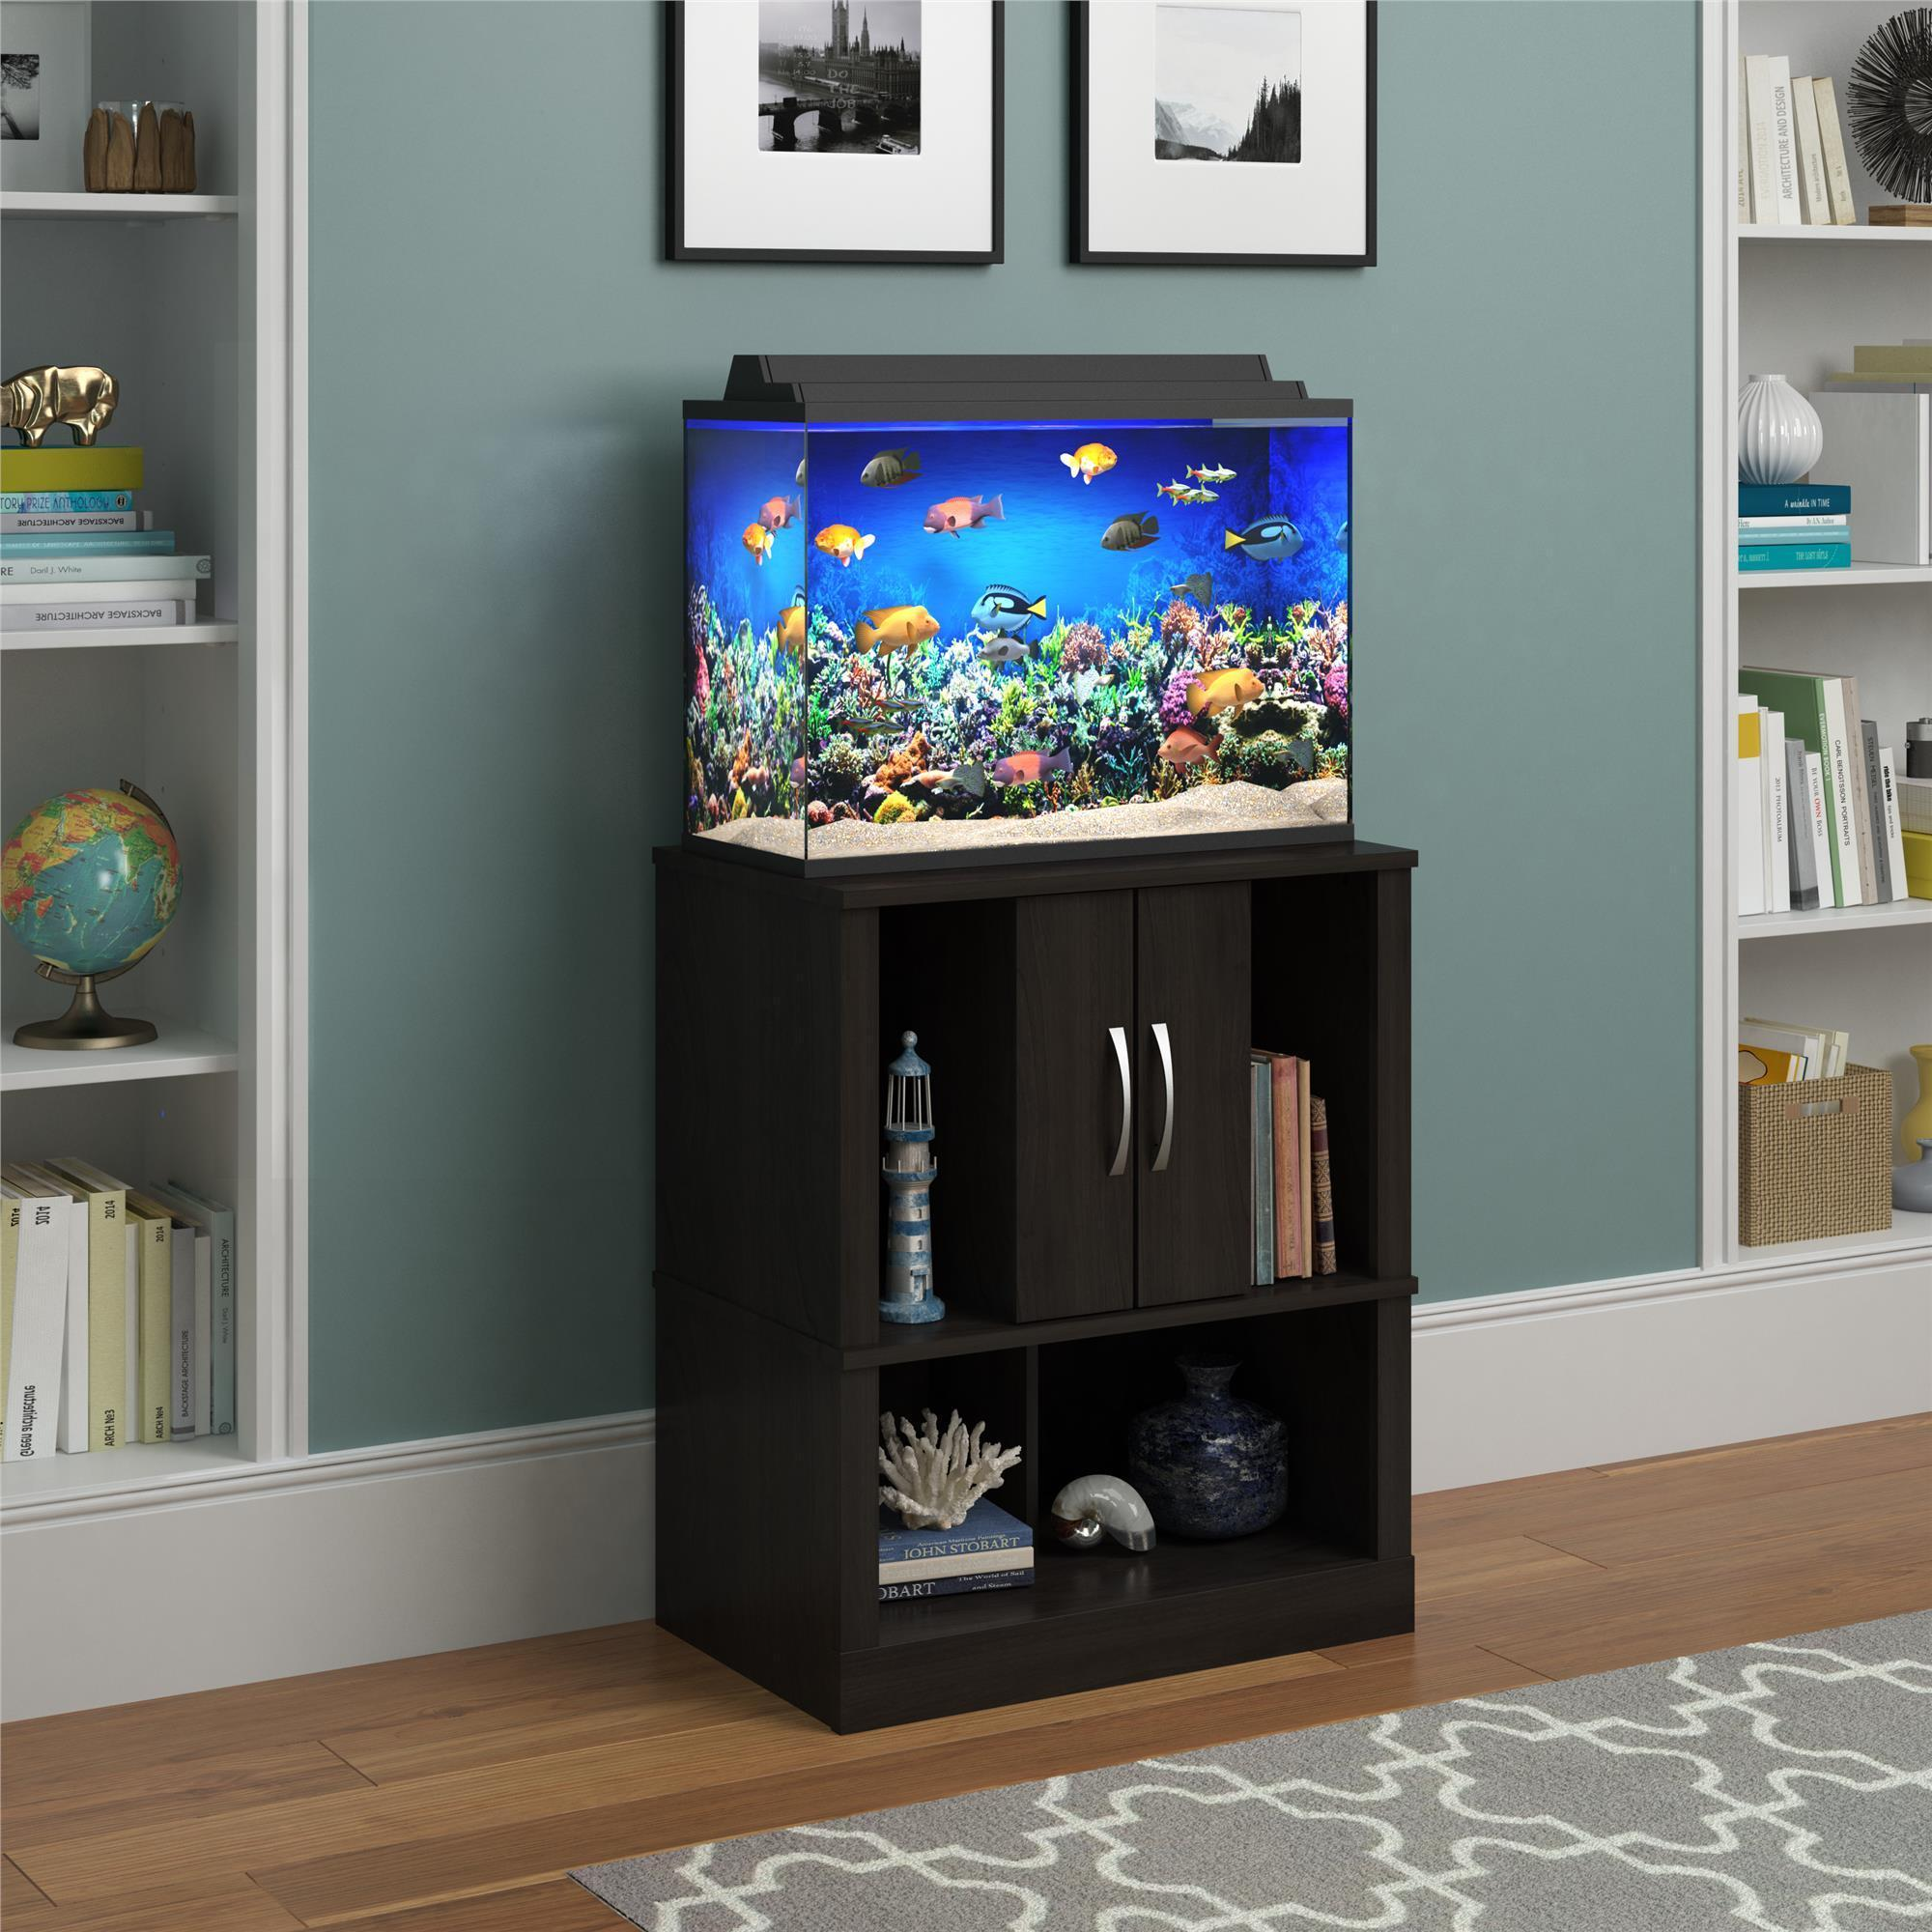 Ameriwood Home Altra Cove 20 Gallon Aquarium Stand (Aquar...